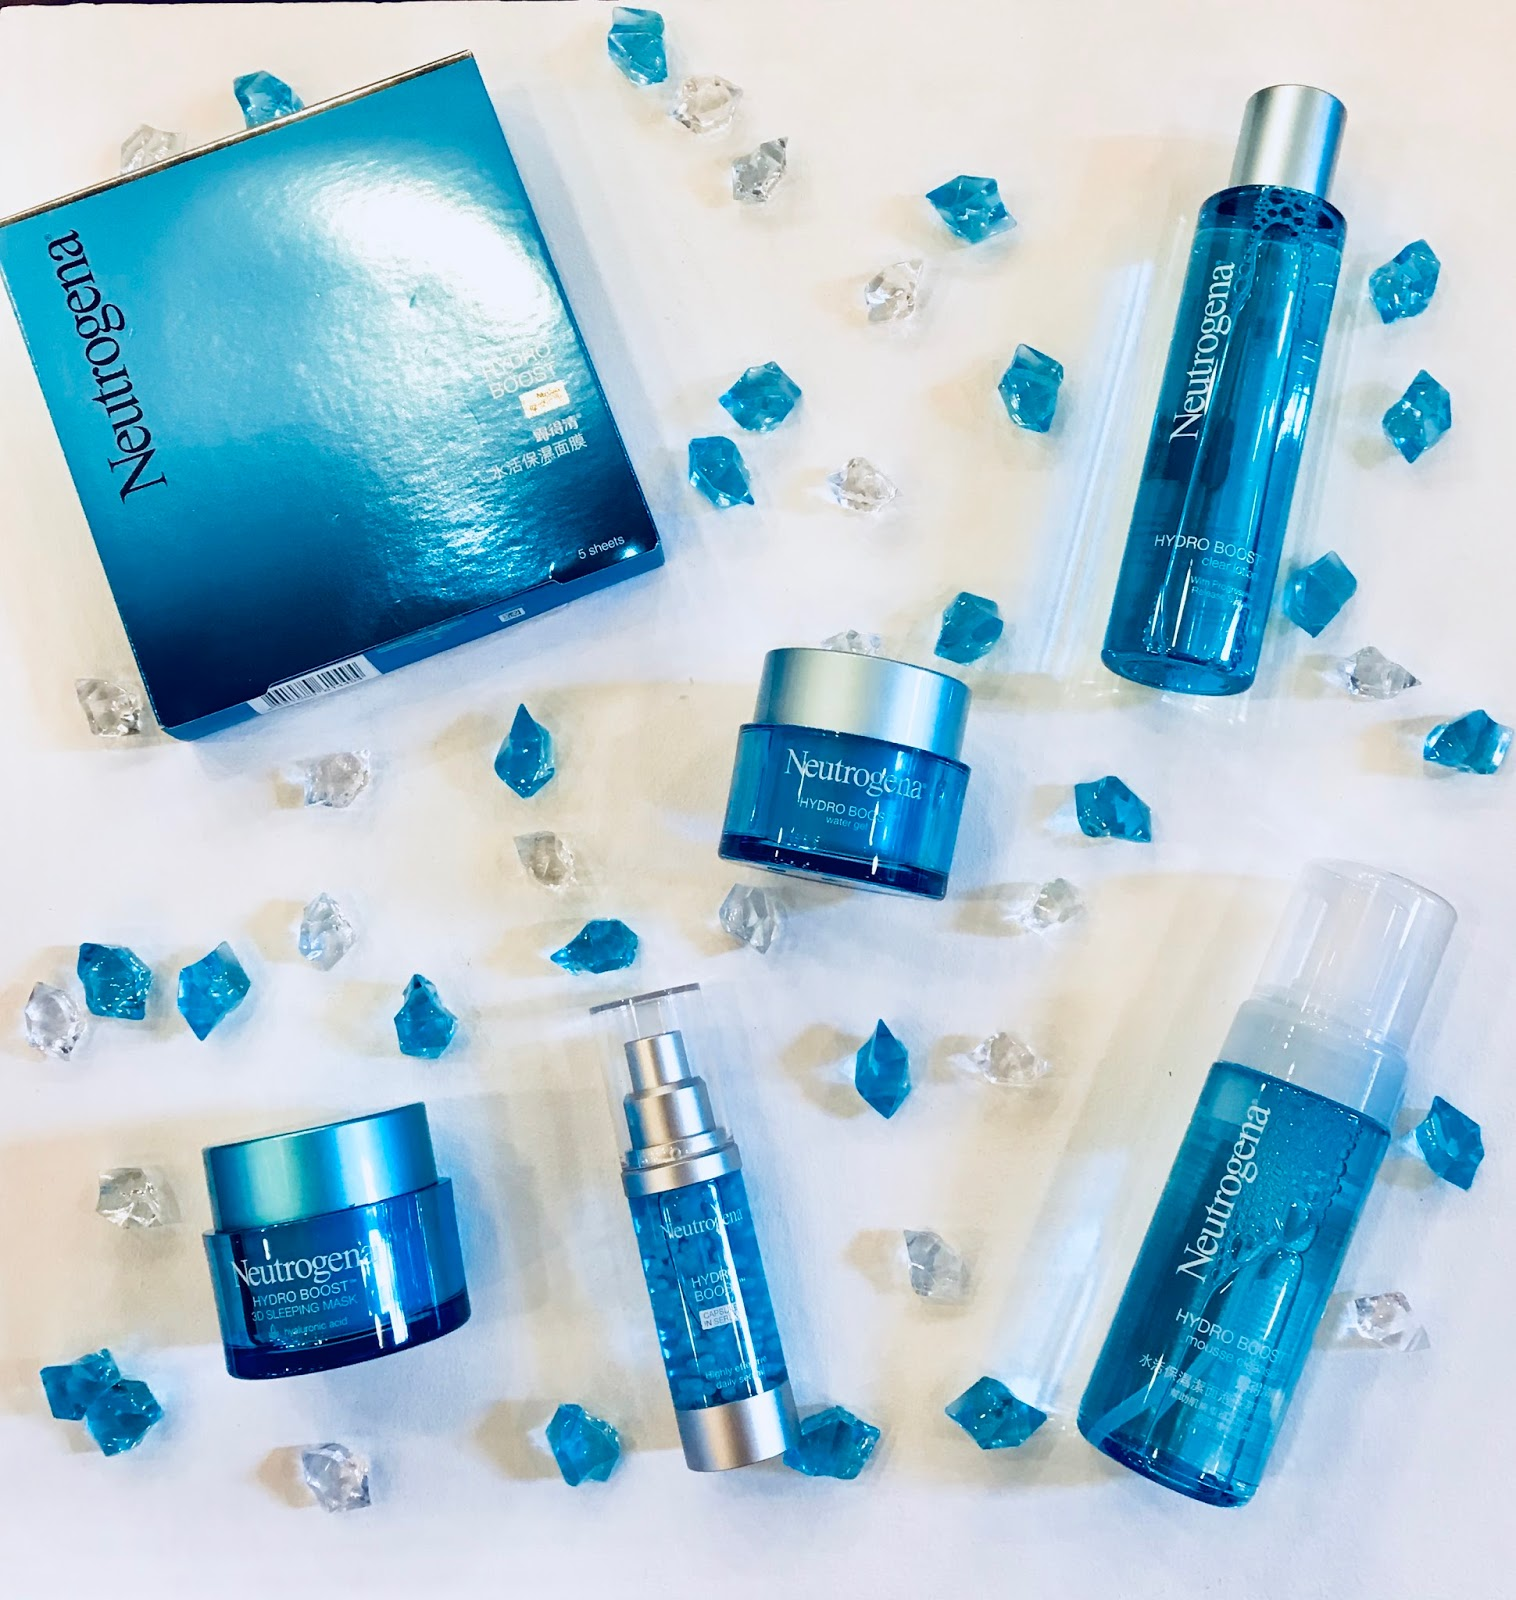 [Beauty Review] Neutrogena introduces Hydro Boost Duo to Unlock Your Skin's Self-Hydration ability